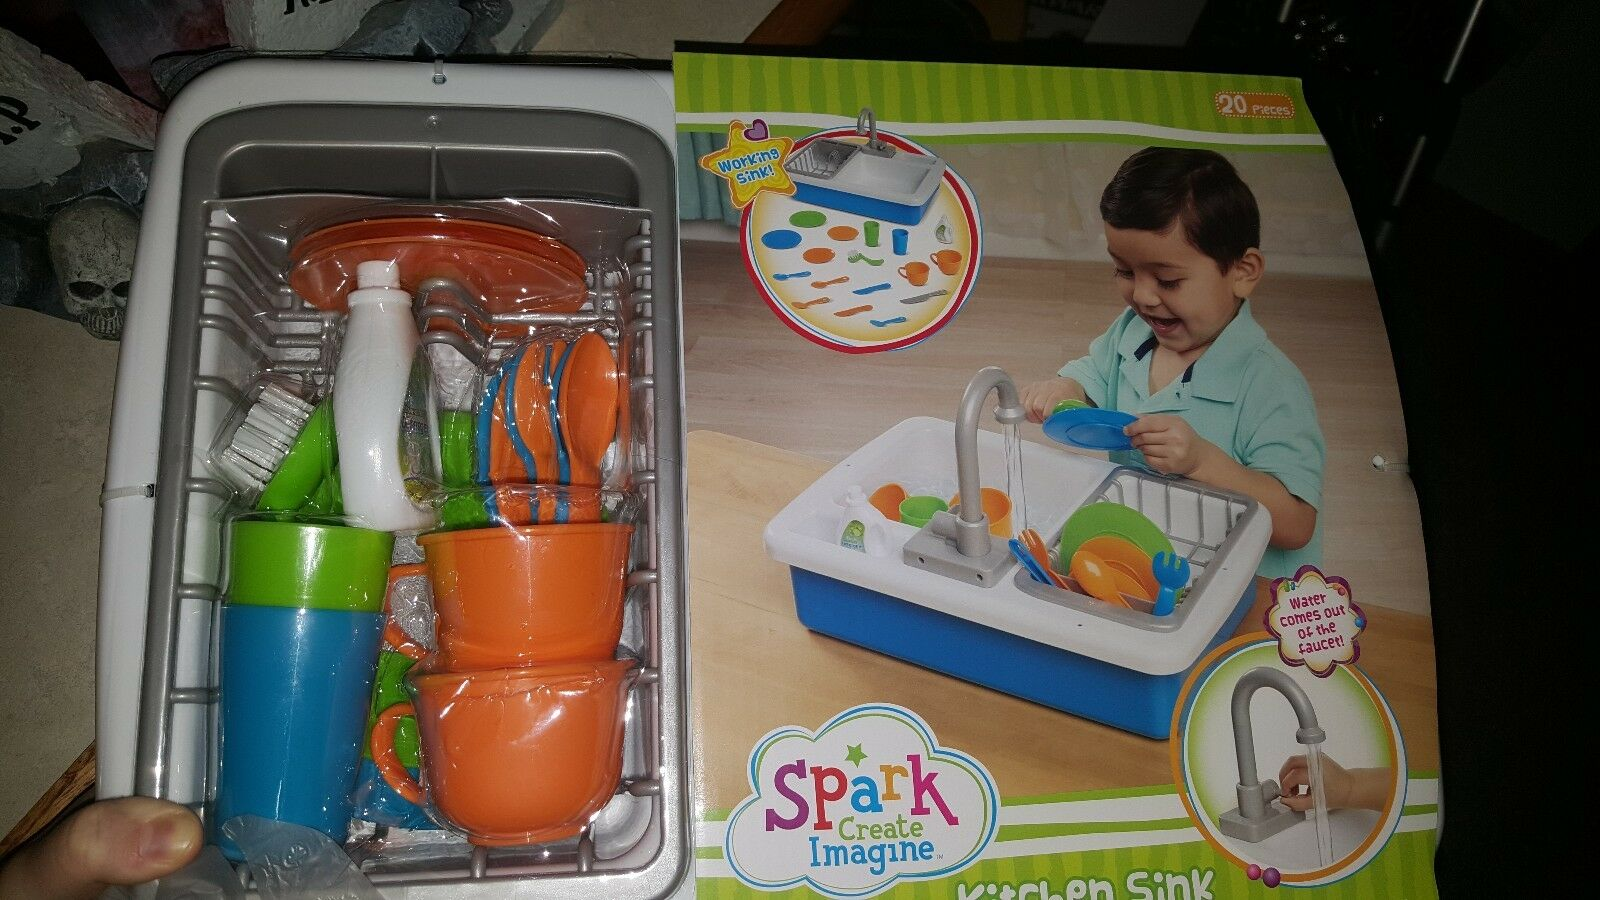 Spark Spark Spark imagine kitchen sink (sold out in stores) brand new   450f49